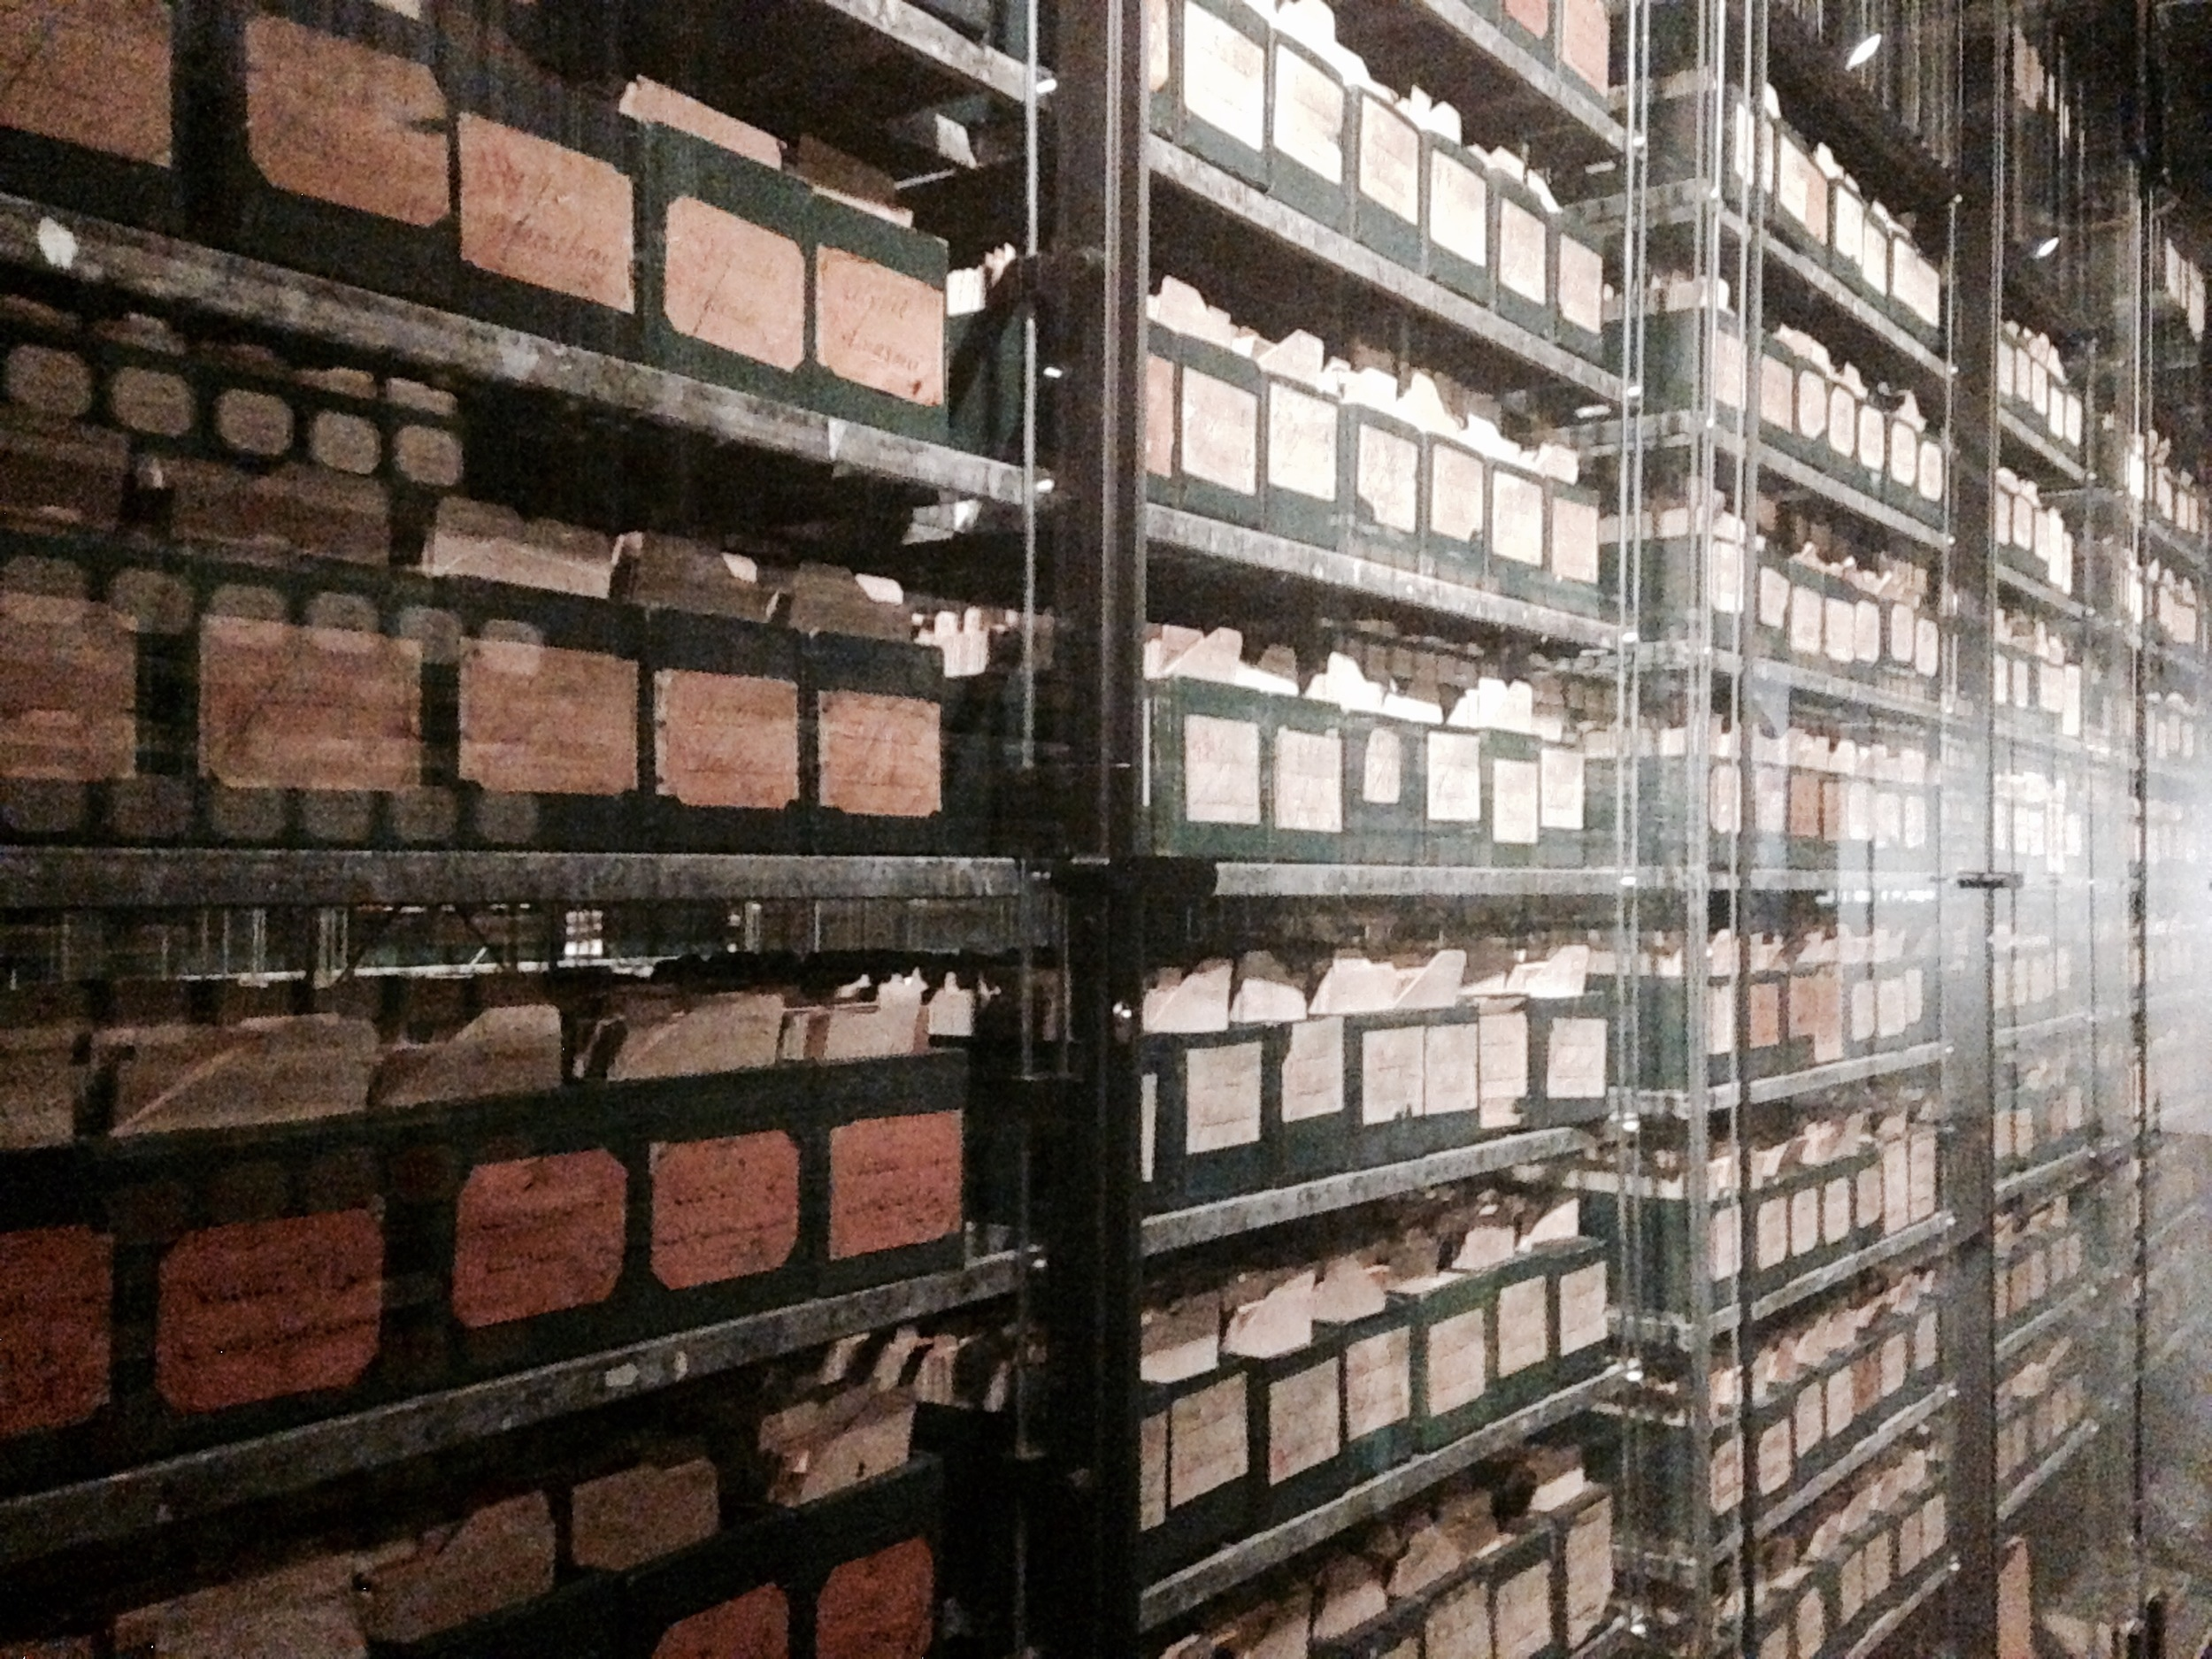 Identification cards for WWI soldiers, declared a monument to human memory by UNESCO